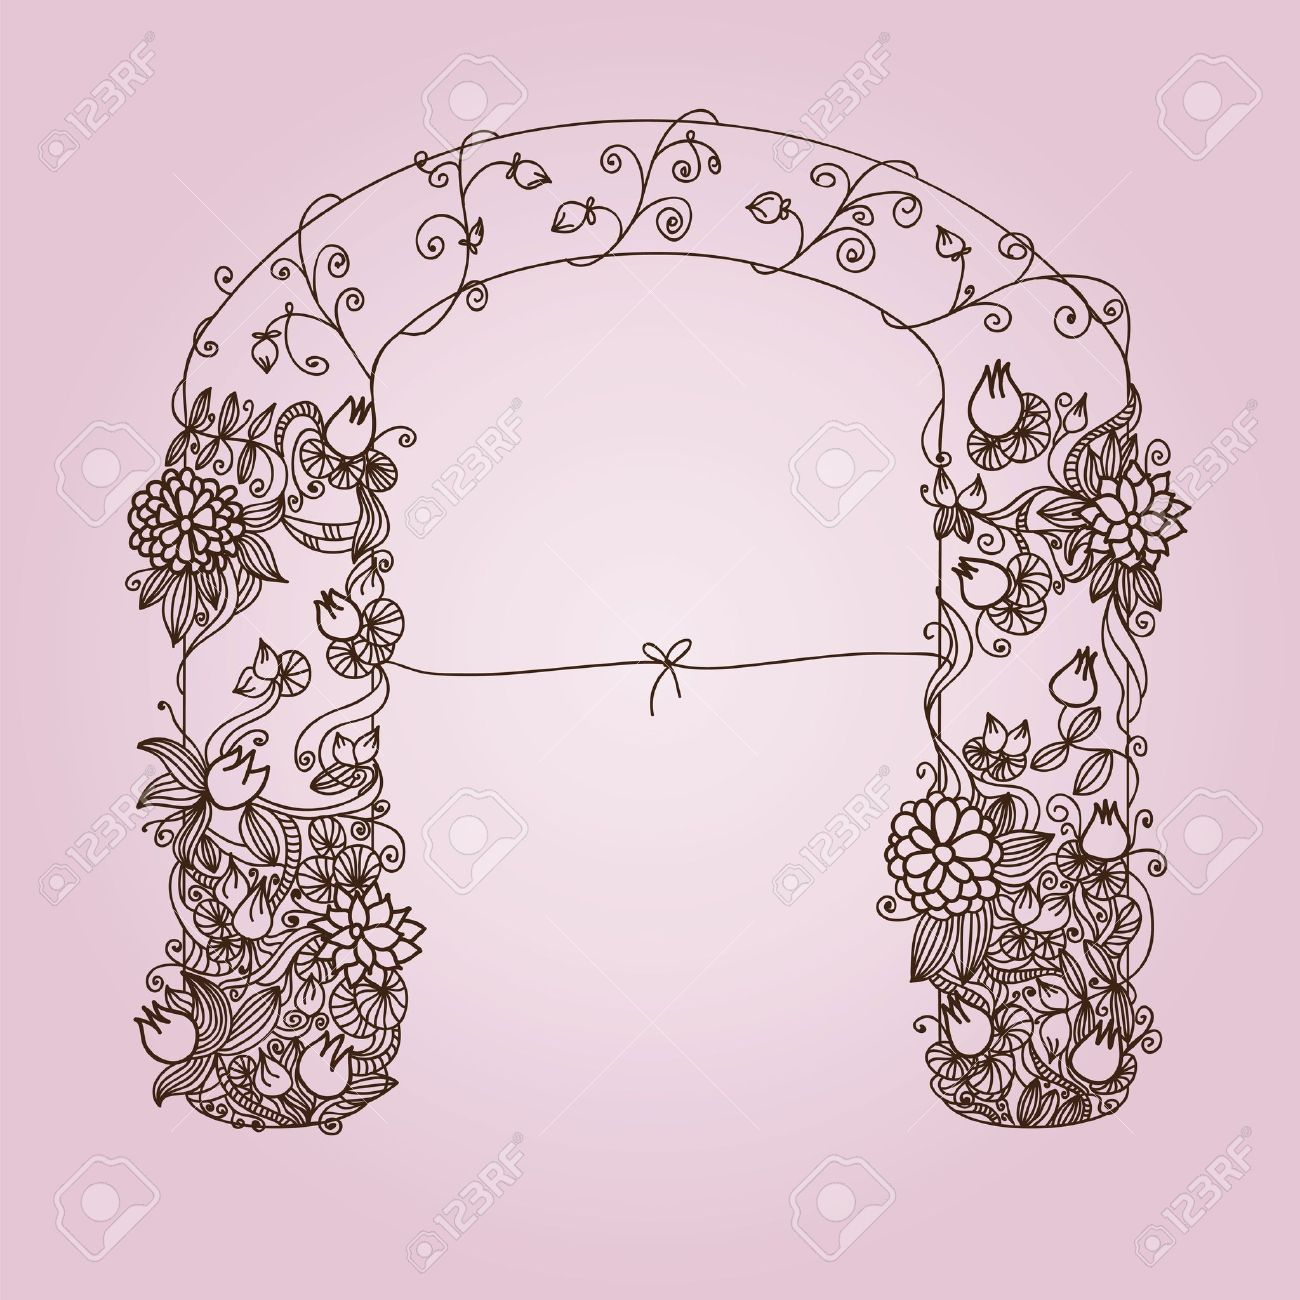 1300x1300 Hand Drawn Garden Gate With Welcoming Ribbon, Stylized Royalty